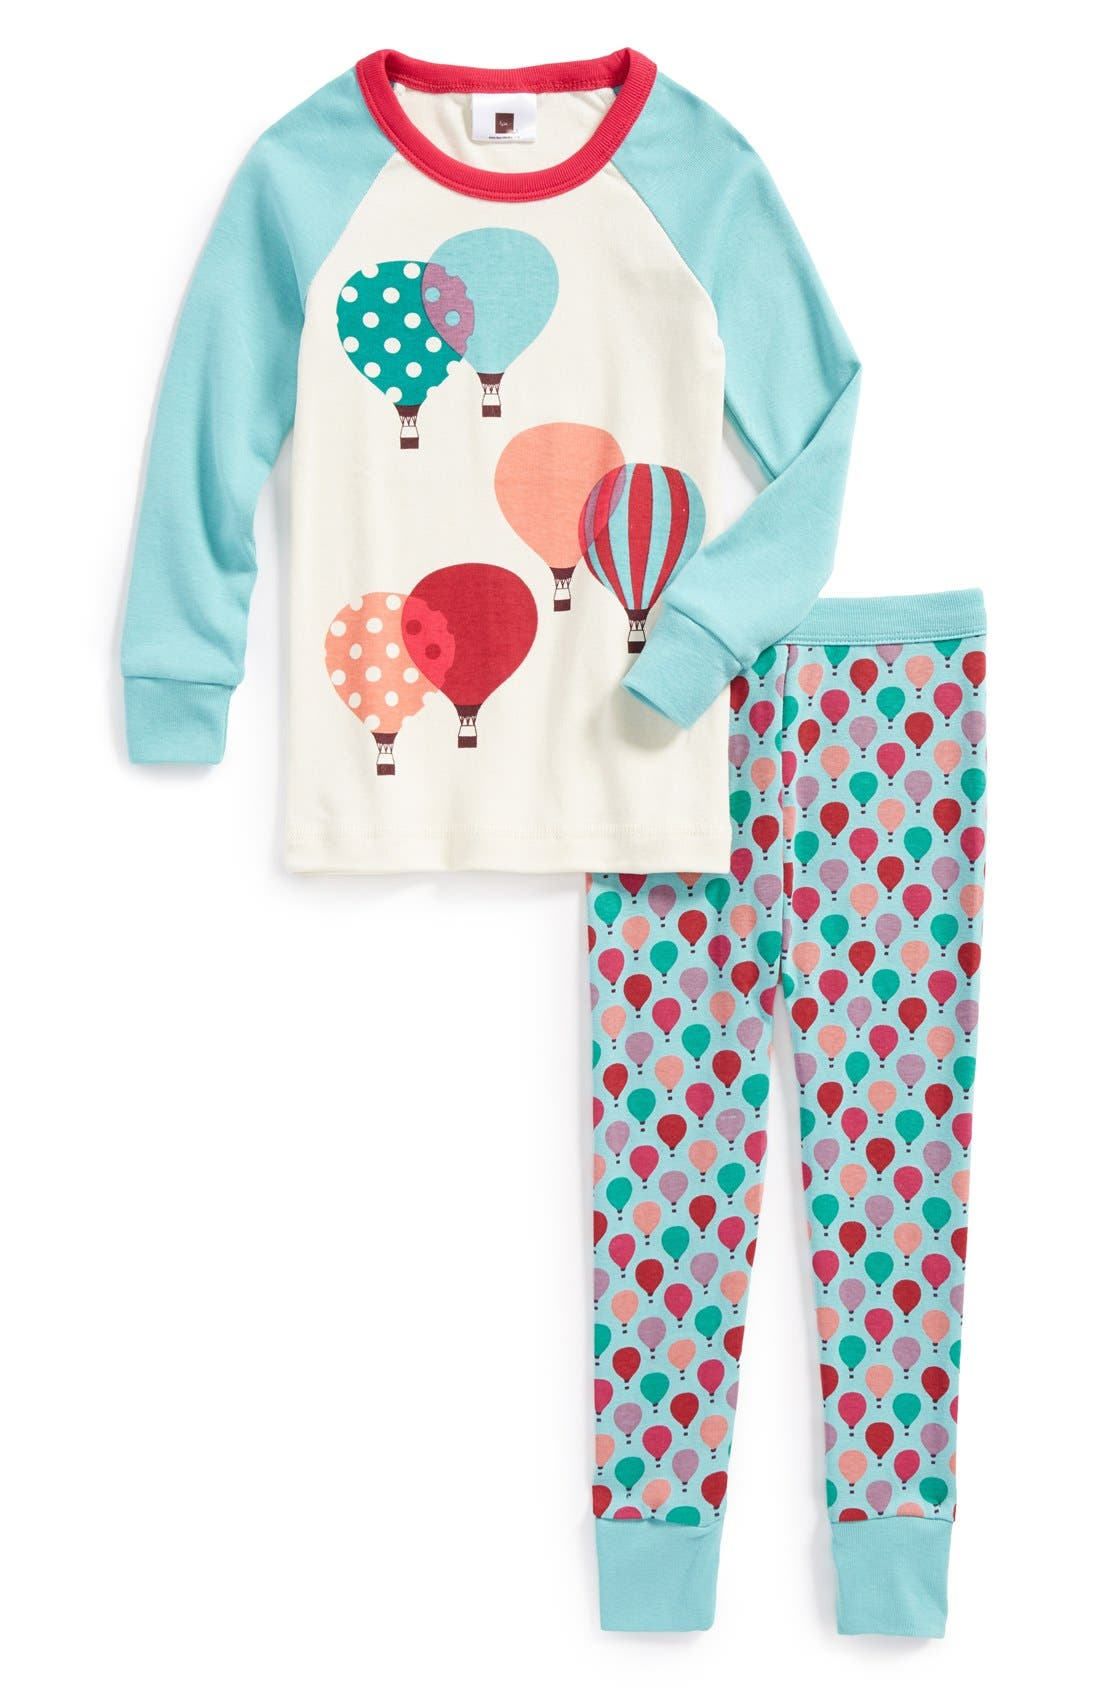 Alternate Image 1 Selected - Tea Collection 'Luftballons' Two-Piece Fitted Pajamas (Toddler Girls, Little Girls & Big Girls)